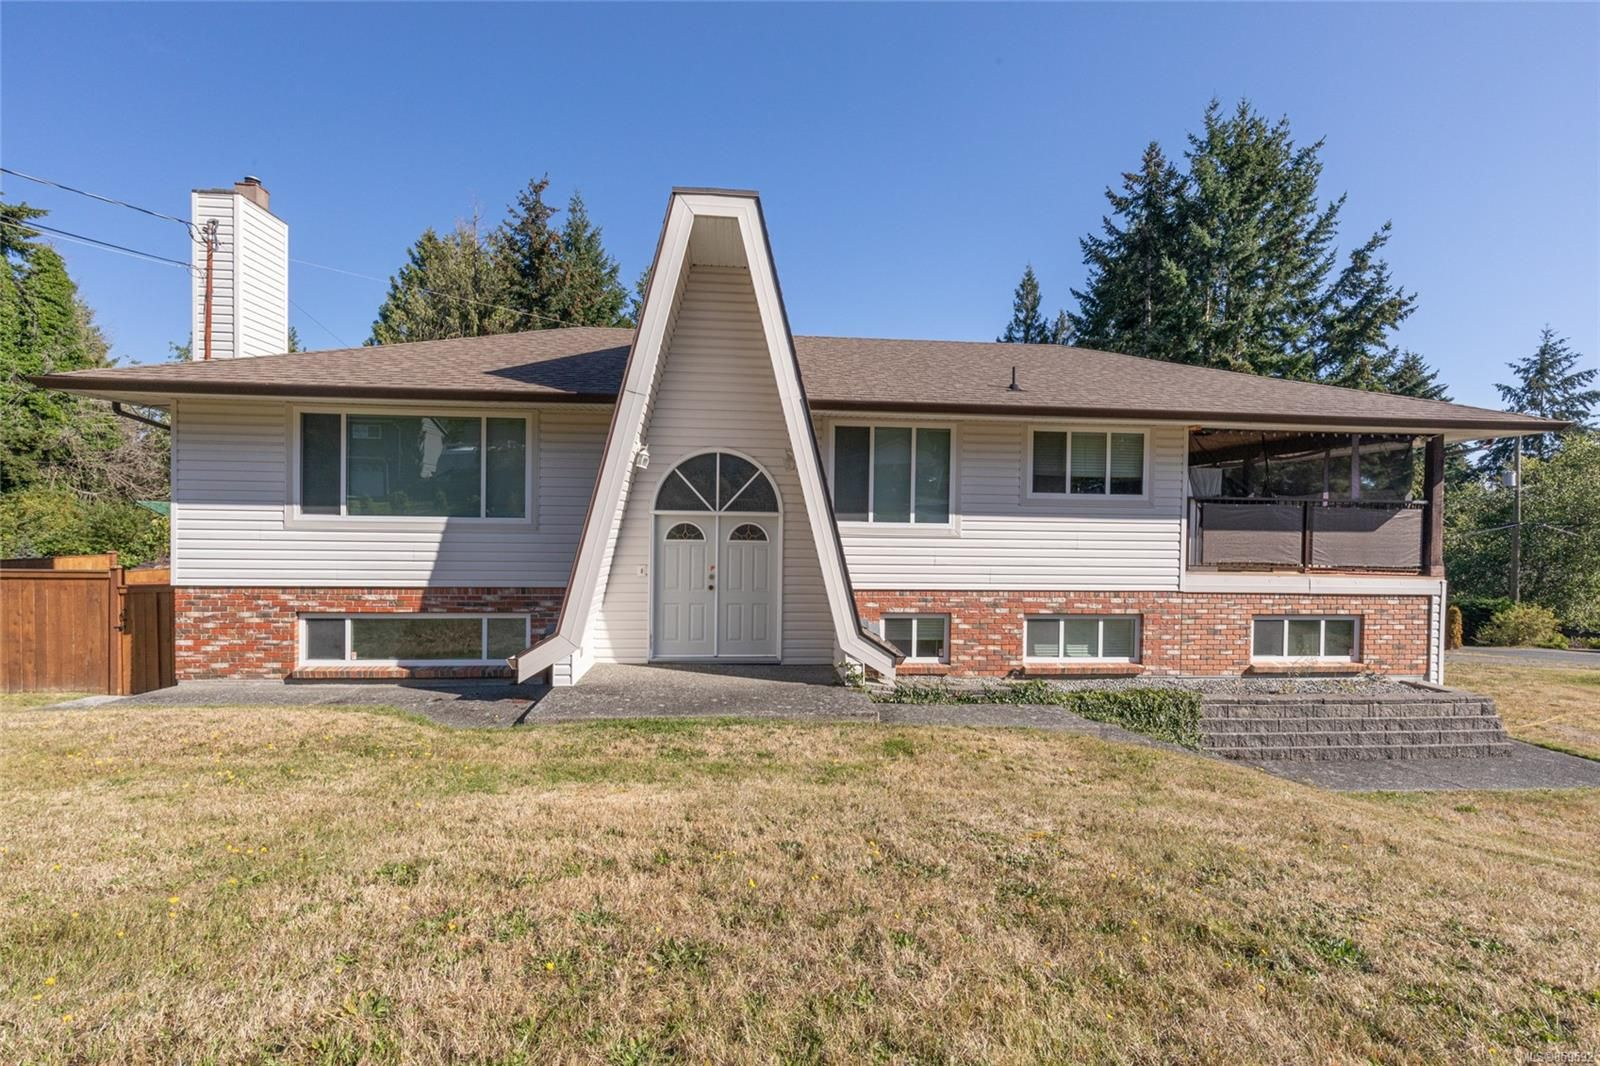 Main Photo: 7452 Thicke Rd in : Na Lower Lantzville House for sale (Nanaimo)  : MLS®# 859592